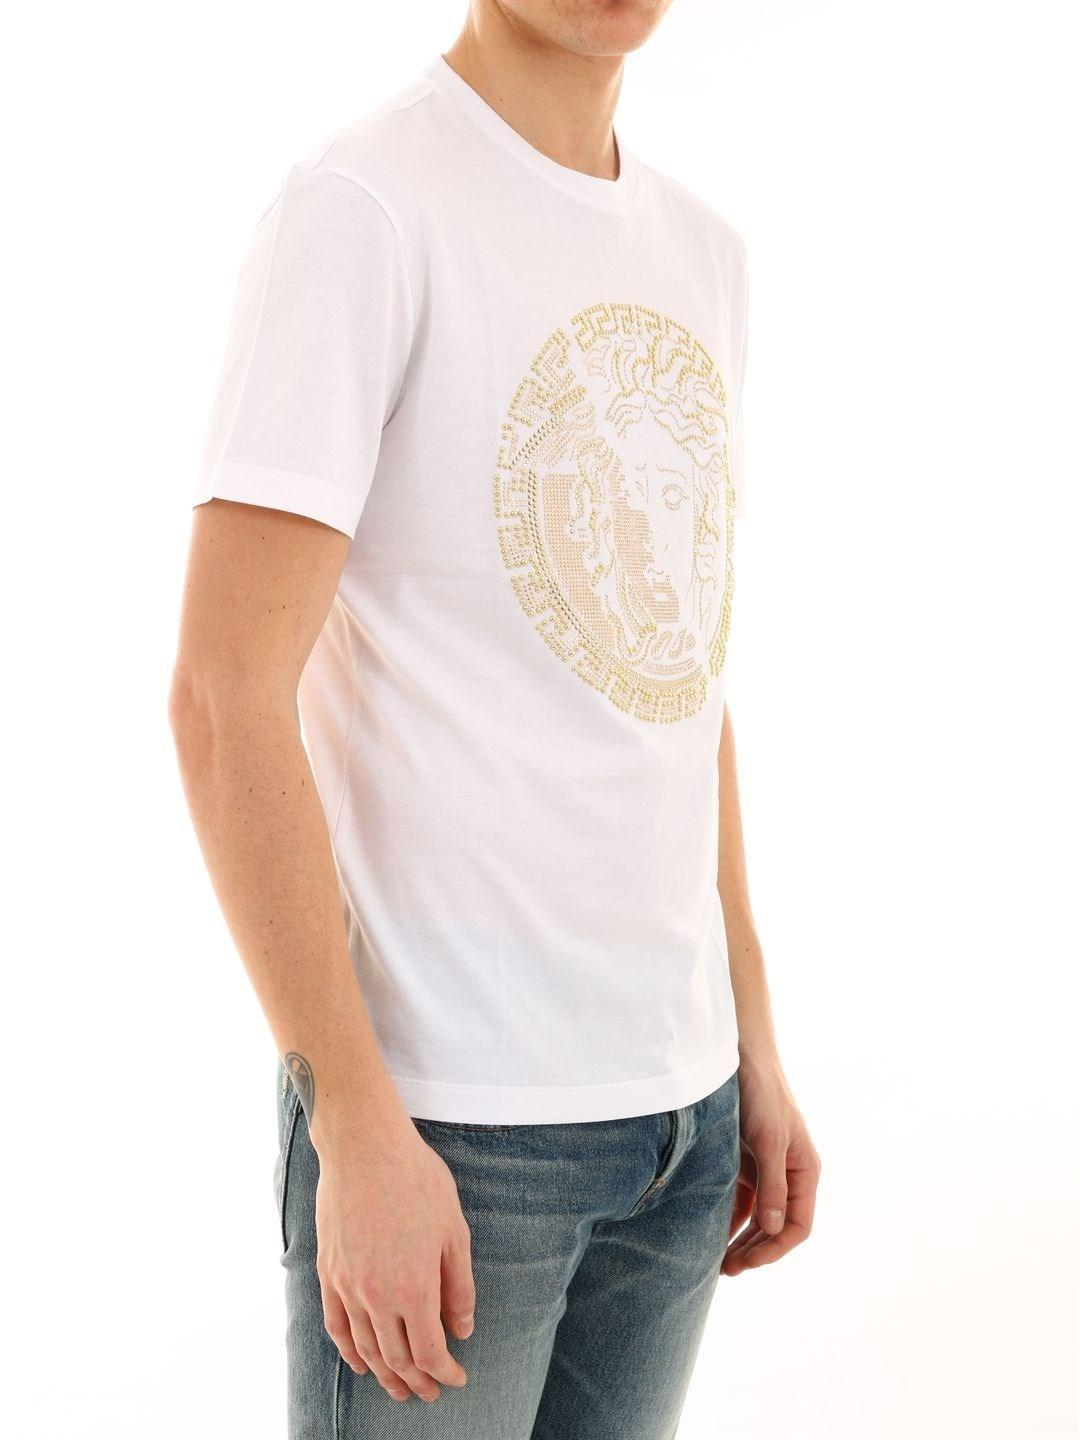 91557d7bc Lyst - Versace Men's A81884a224589a001 White Cotton T-shirt in White for Men